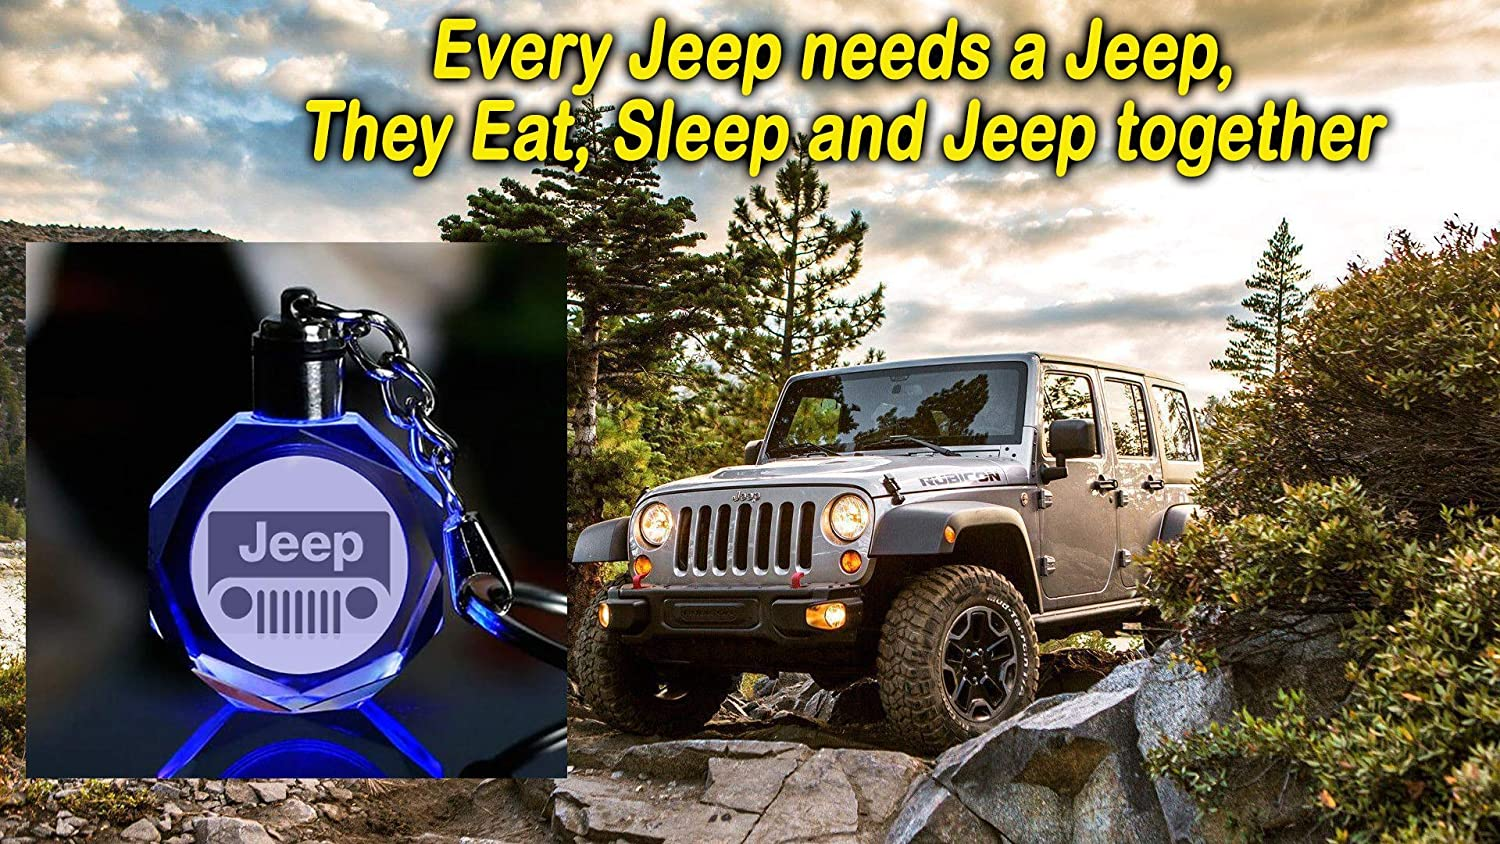 (Jeep) Grill Keychain with Logo on 3D Crystal and LED Light - FOB Key Ring Holder Chain Valet - for Men and Women as Automotive Gift and Accessories - ...